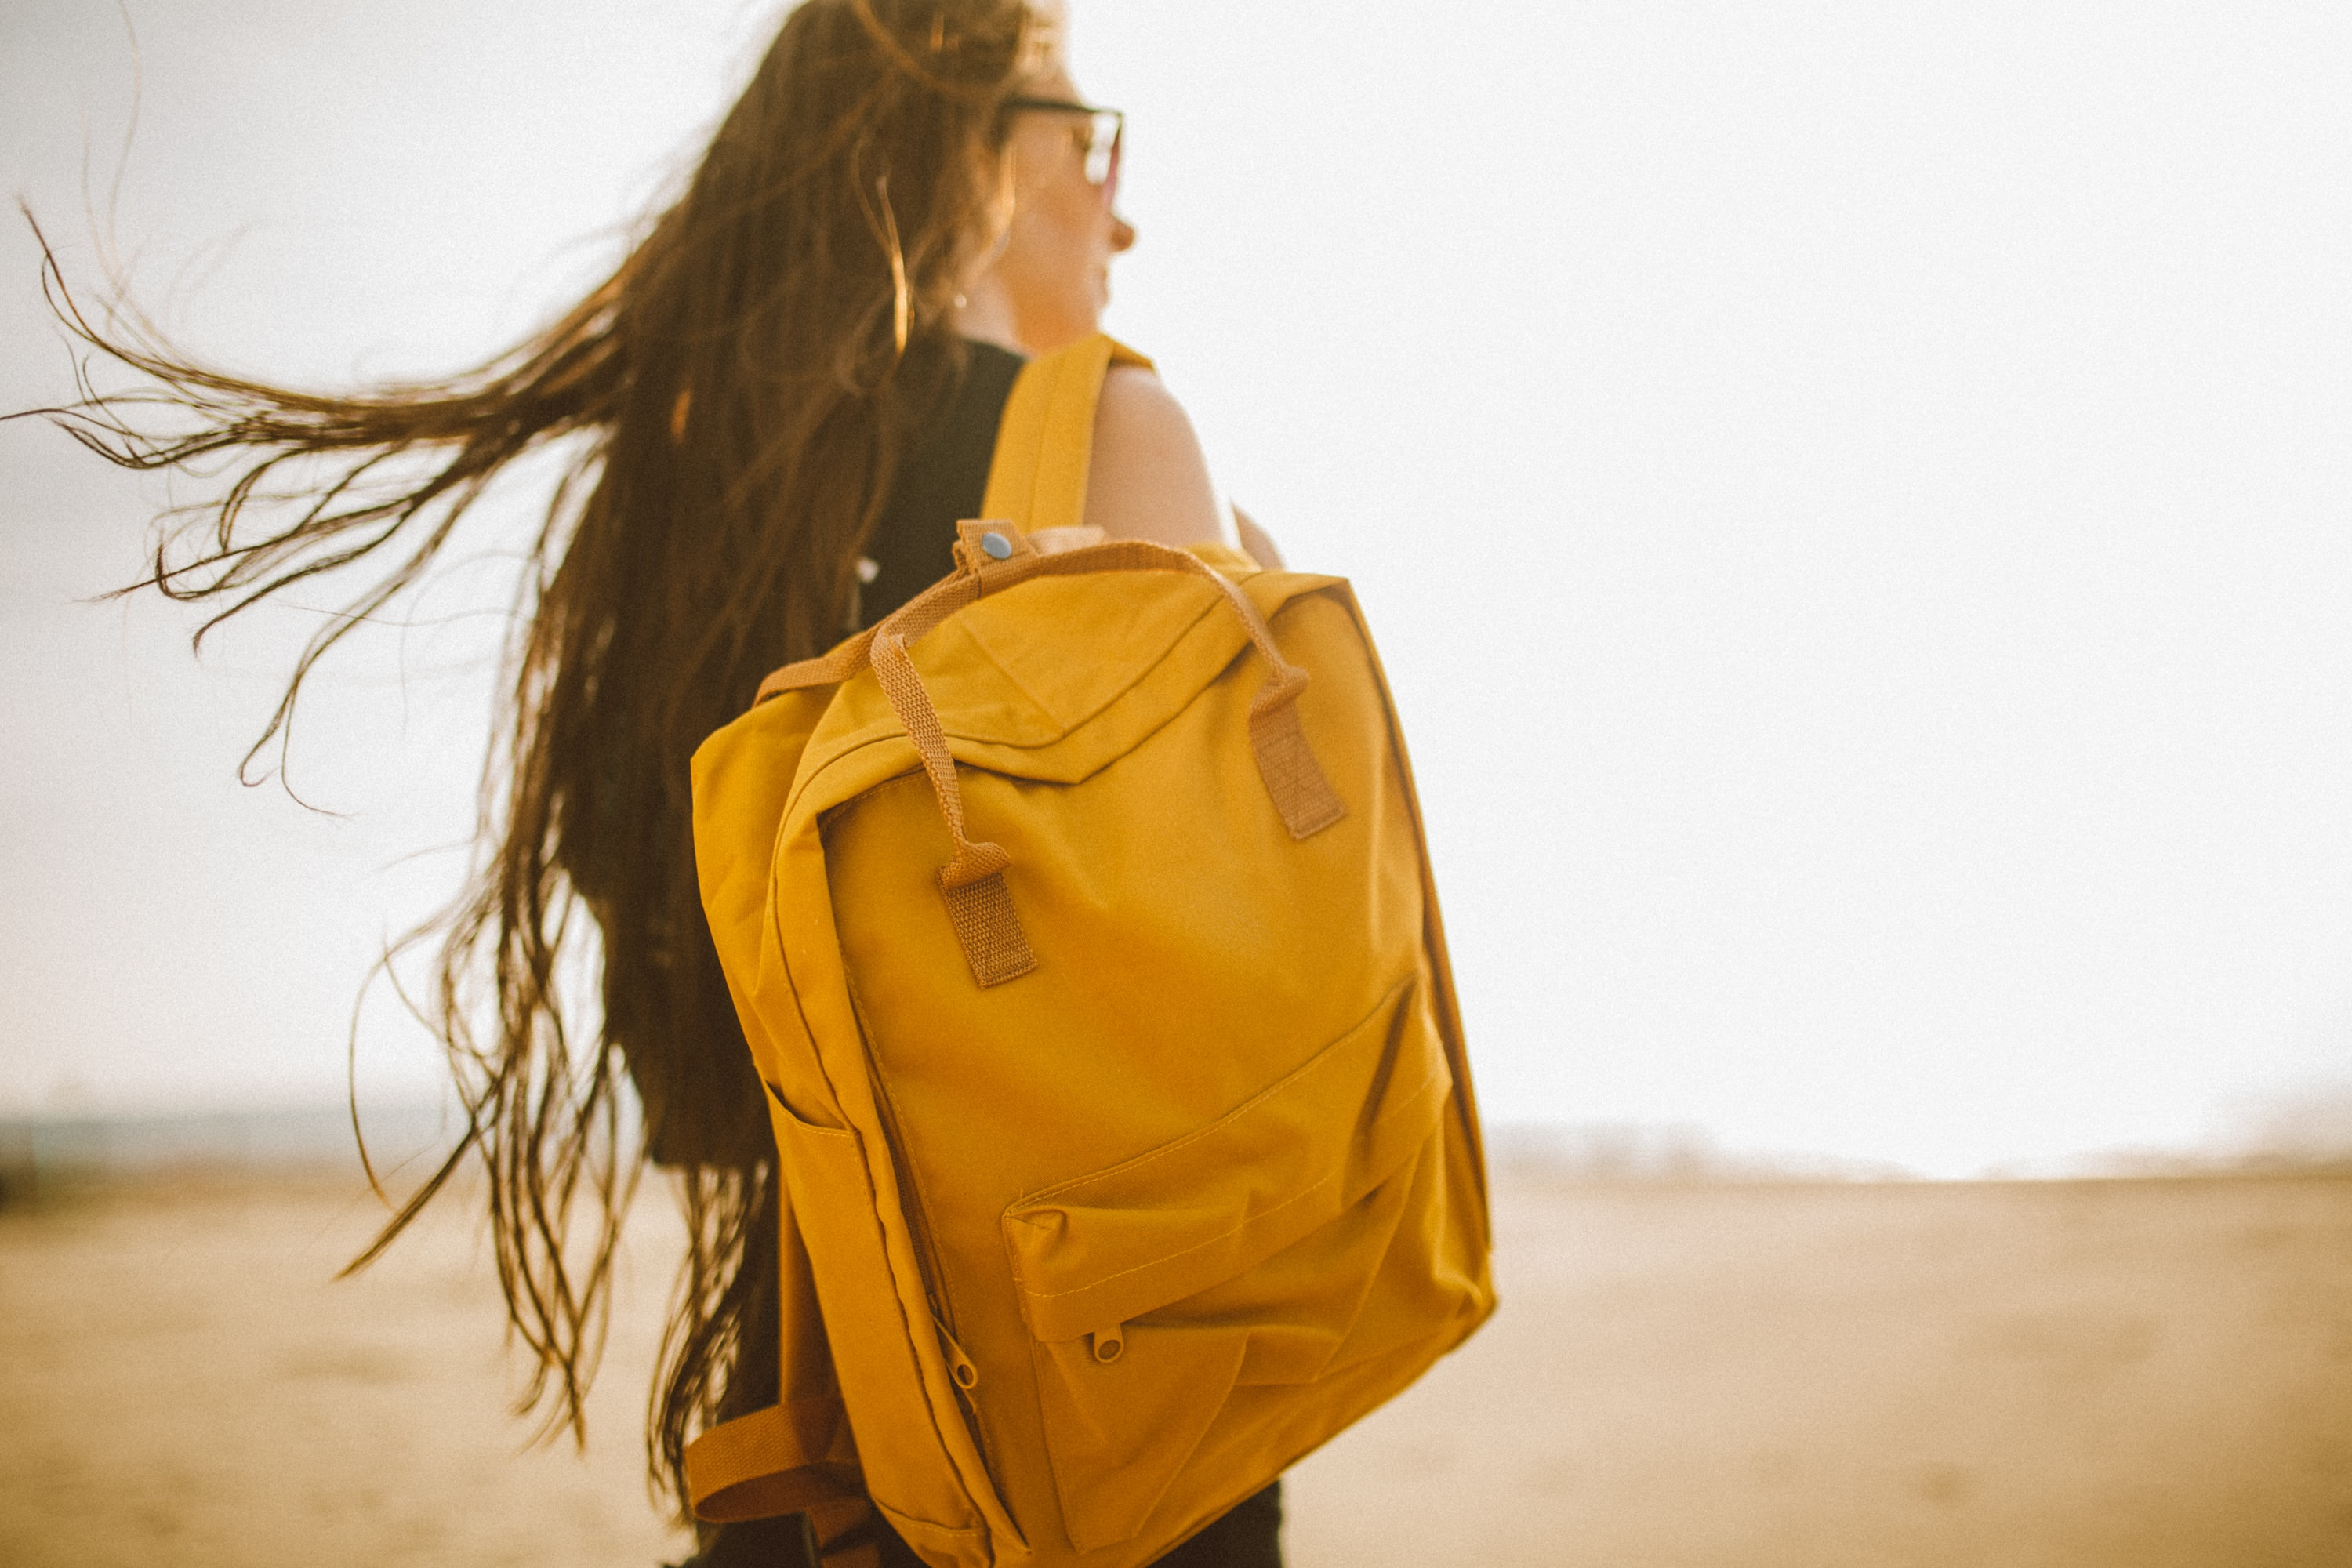 A woman carrying a yellow backpack on her back in Weston-super-Mare